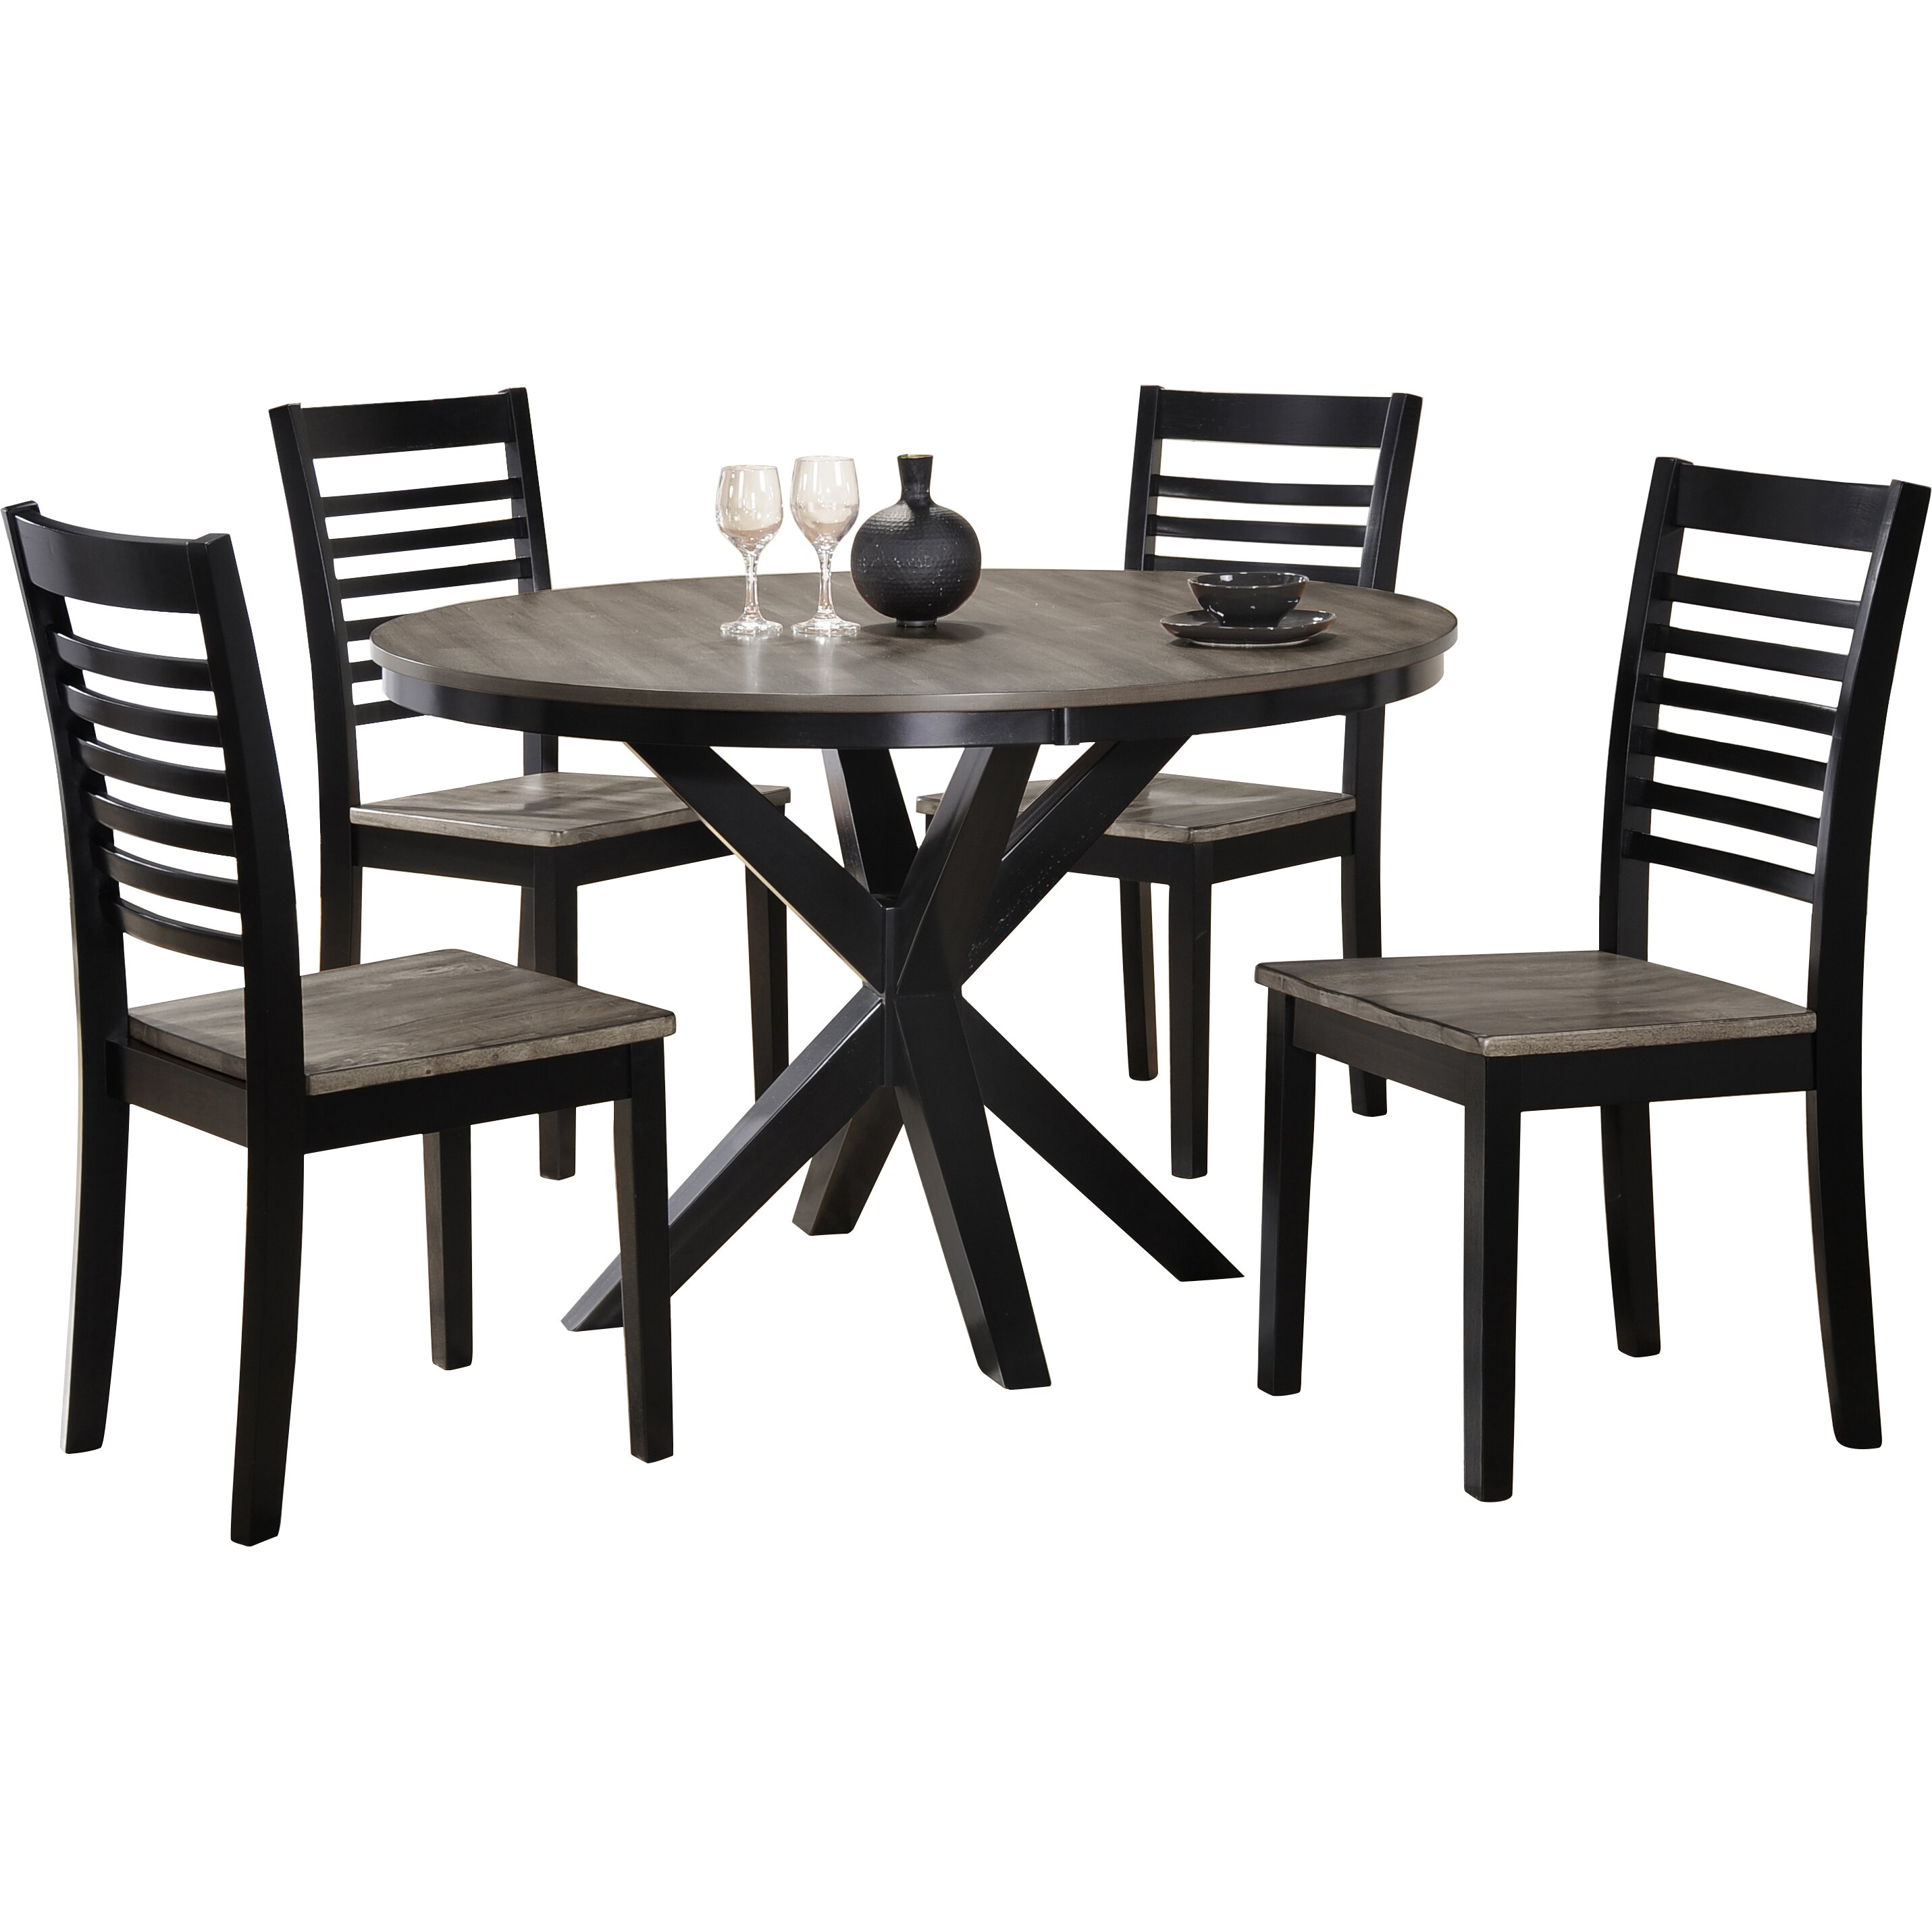 Perfect ... Red Barrel Studio Reg Simmons Casegoods Clipper City Dining Table ·  Outdoor ...